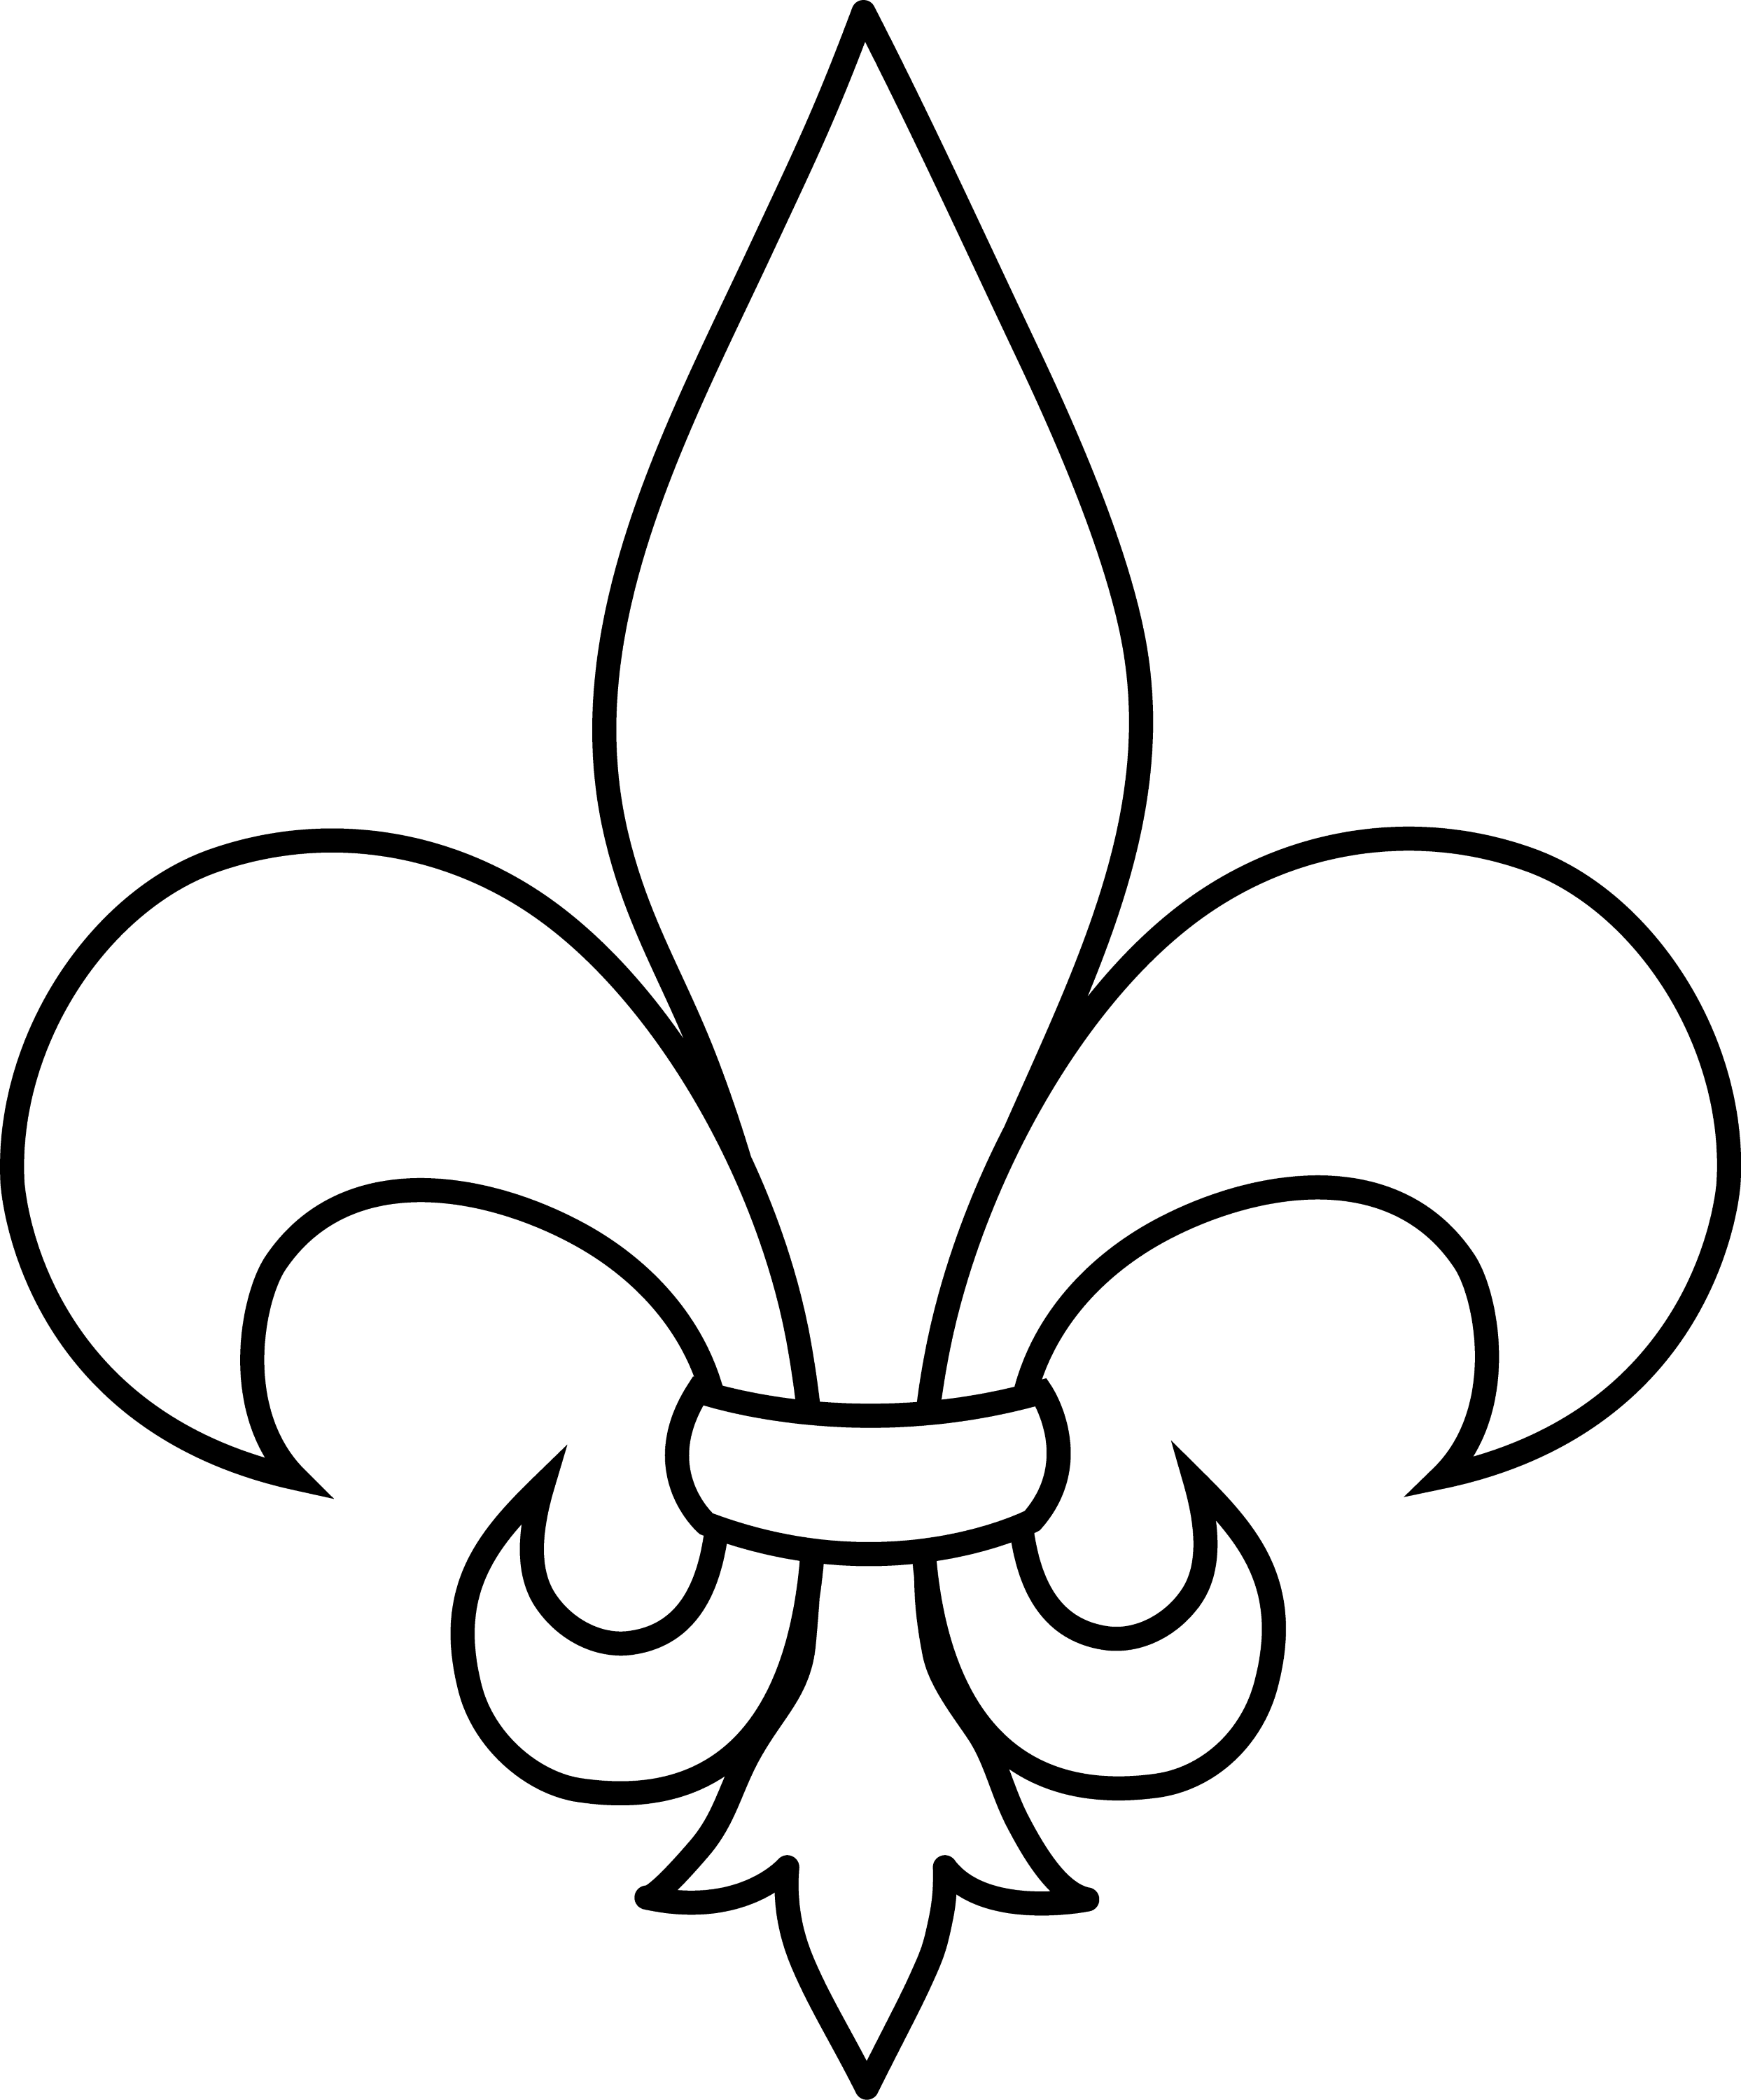 Line Drawing Unicode : Fleur de lis in scouting